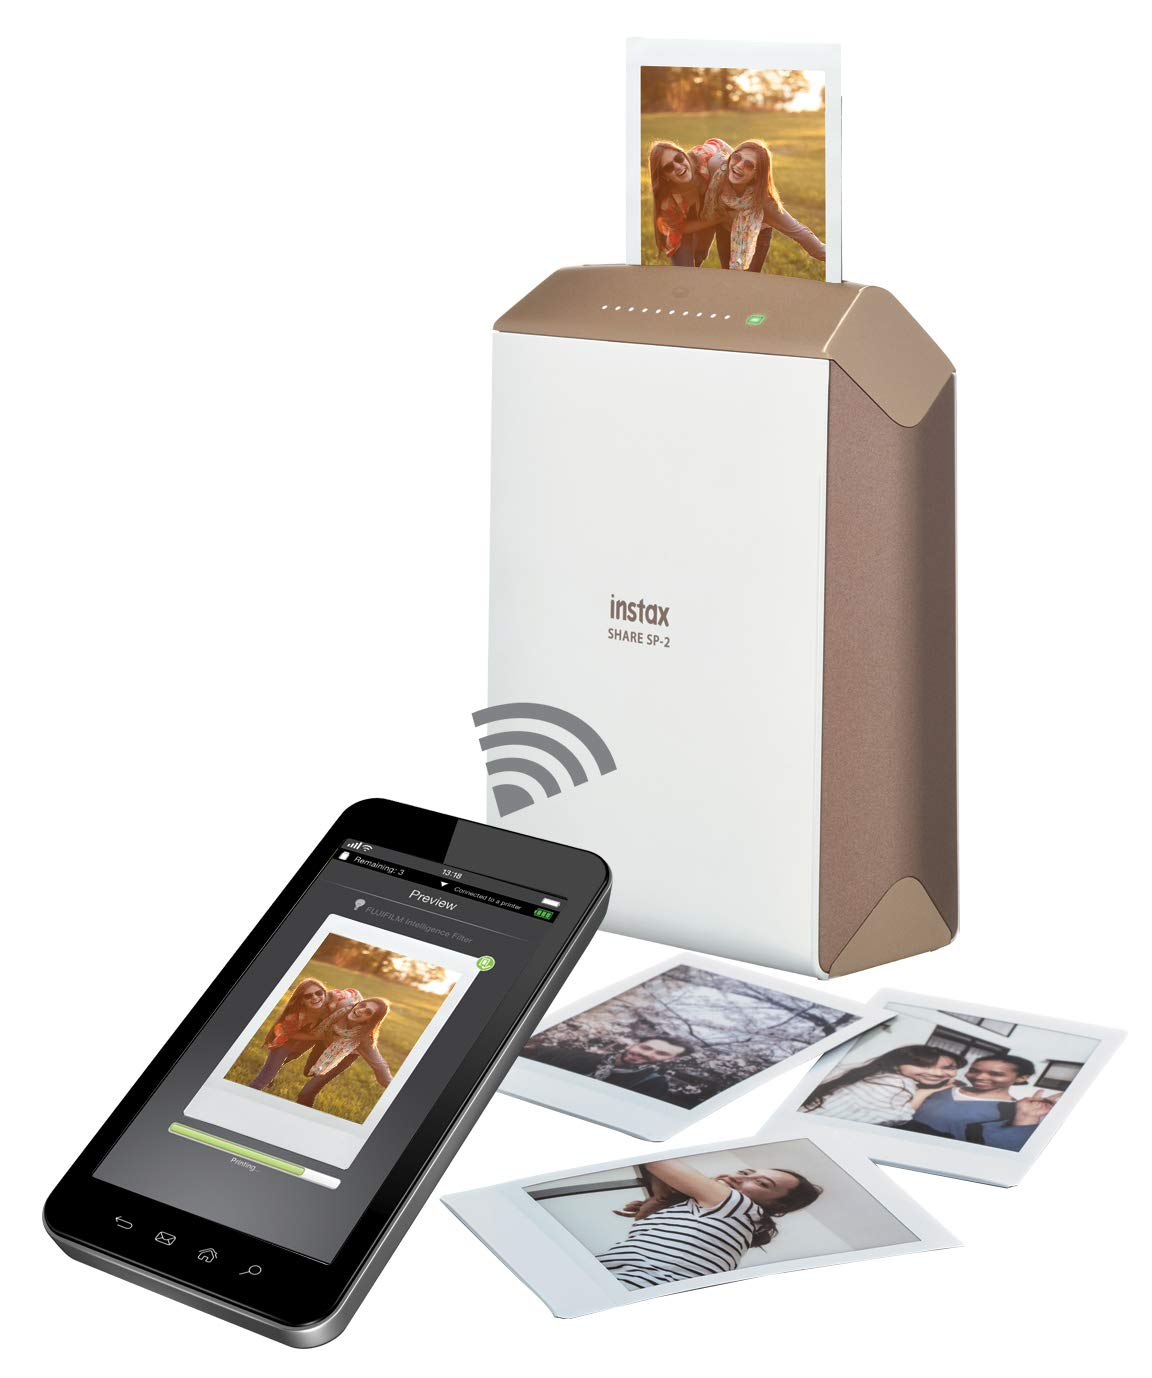 Fujifilm INSTAX Share SP-2 Mobile Printer (Gold) with Instax Mini Instant Film Value Pack - 120 Photos